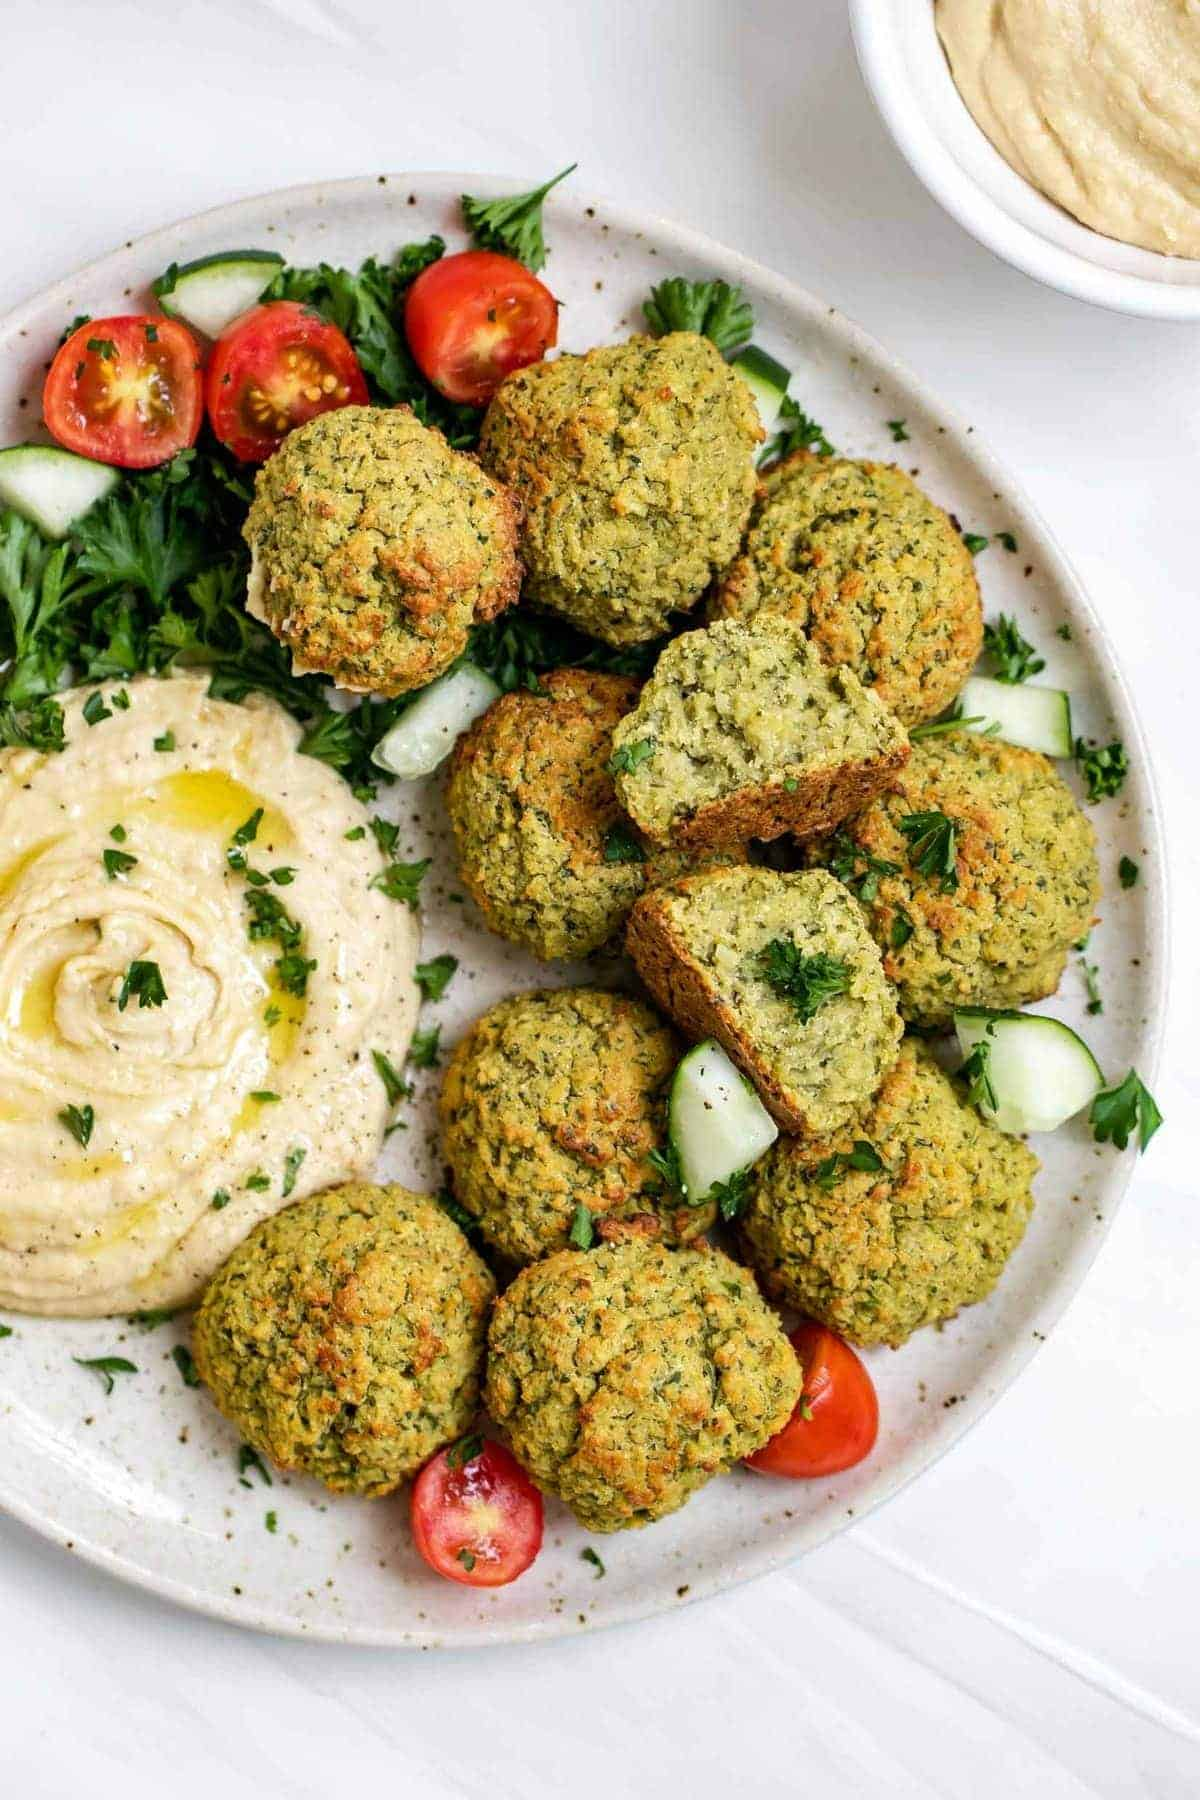 Vegan baked falafel with chickpeas on a plate with hummus.